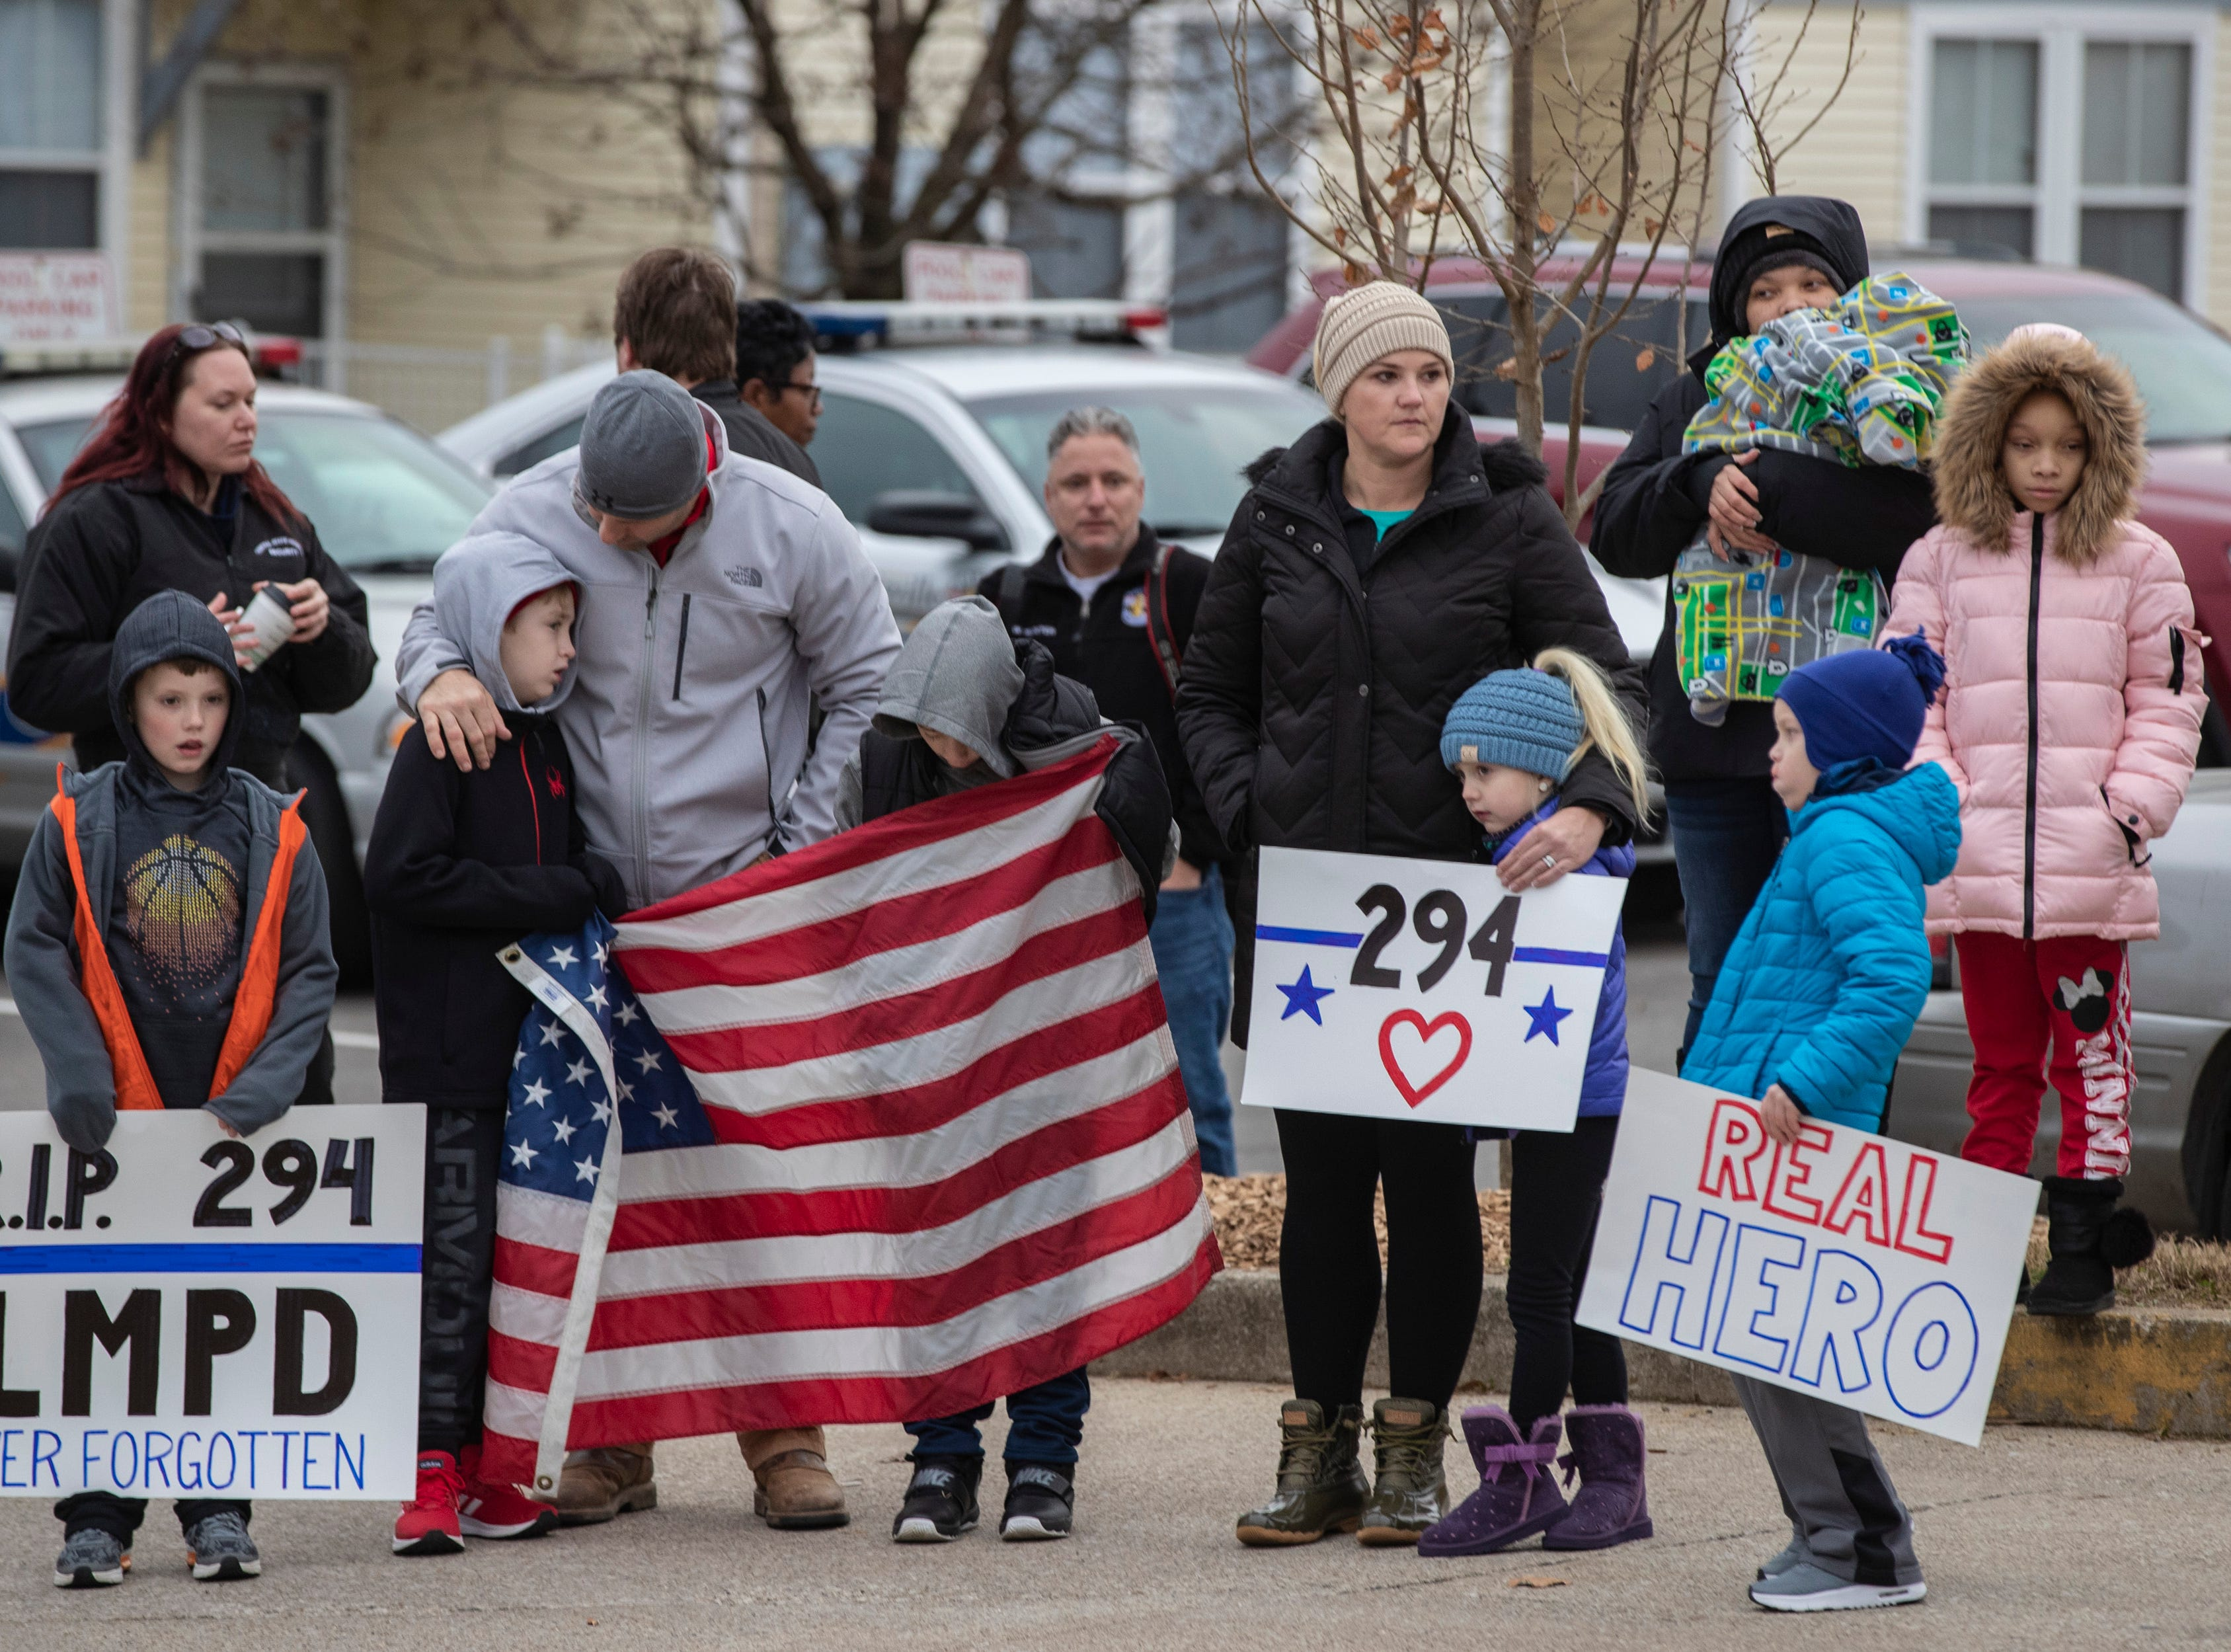 Jake Bibb, from left, stands with Brady Lauder, Brady's father, LMPD Det. Mike Lauder, Thomas Evans, Julie Lauder, Caroline Lauder and Chase Bibb during the procession of Det. Deidre Mengedoht as it stops at the 2nd Division headquarters in Park DuValle. December 29, 2018